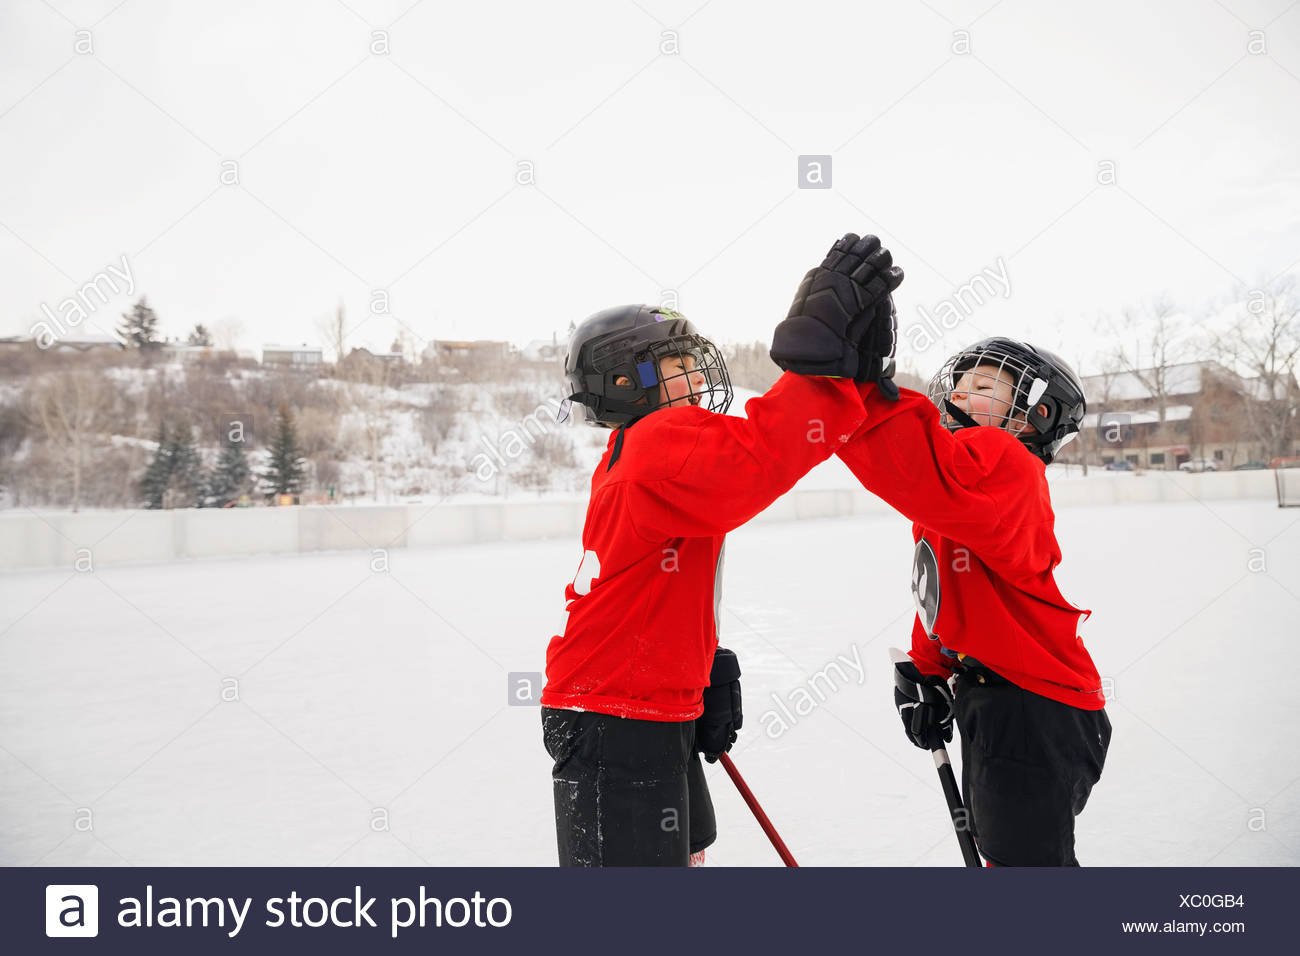 Ice hockey players giving high-five on rink - Stock Image